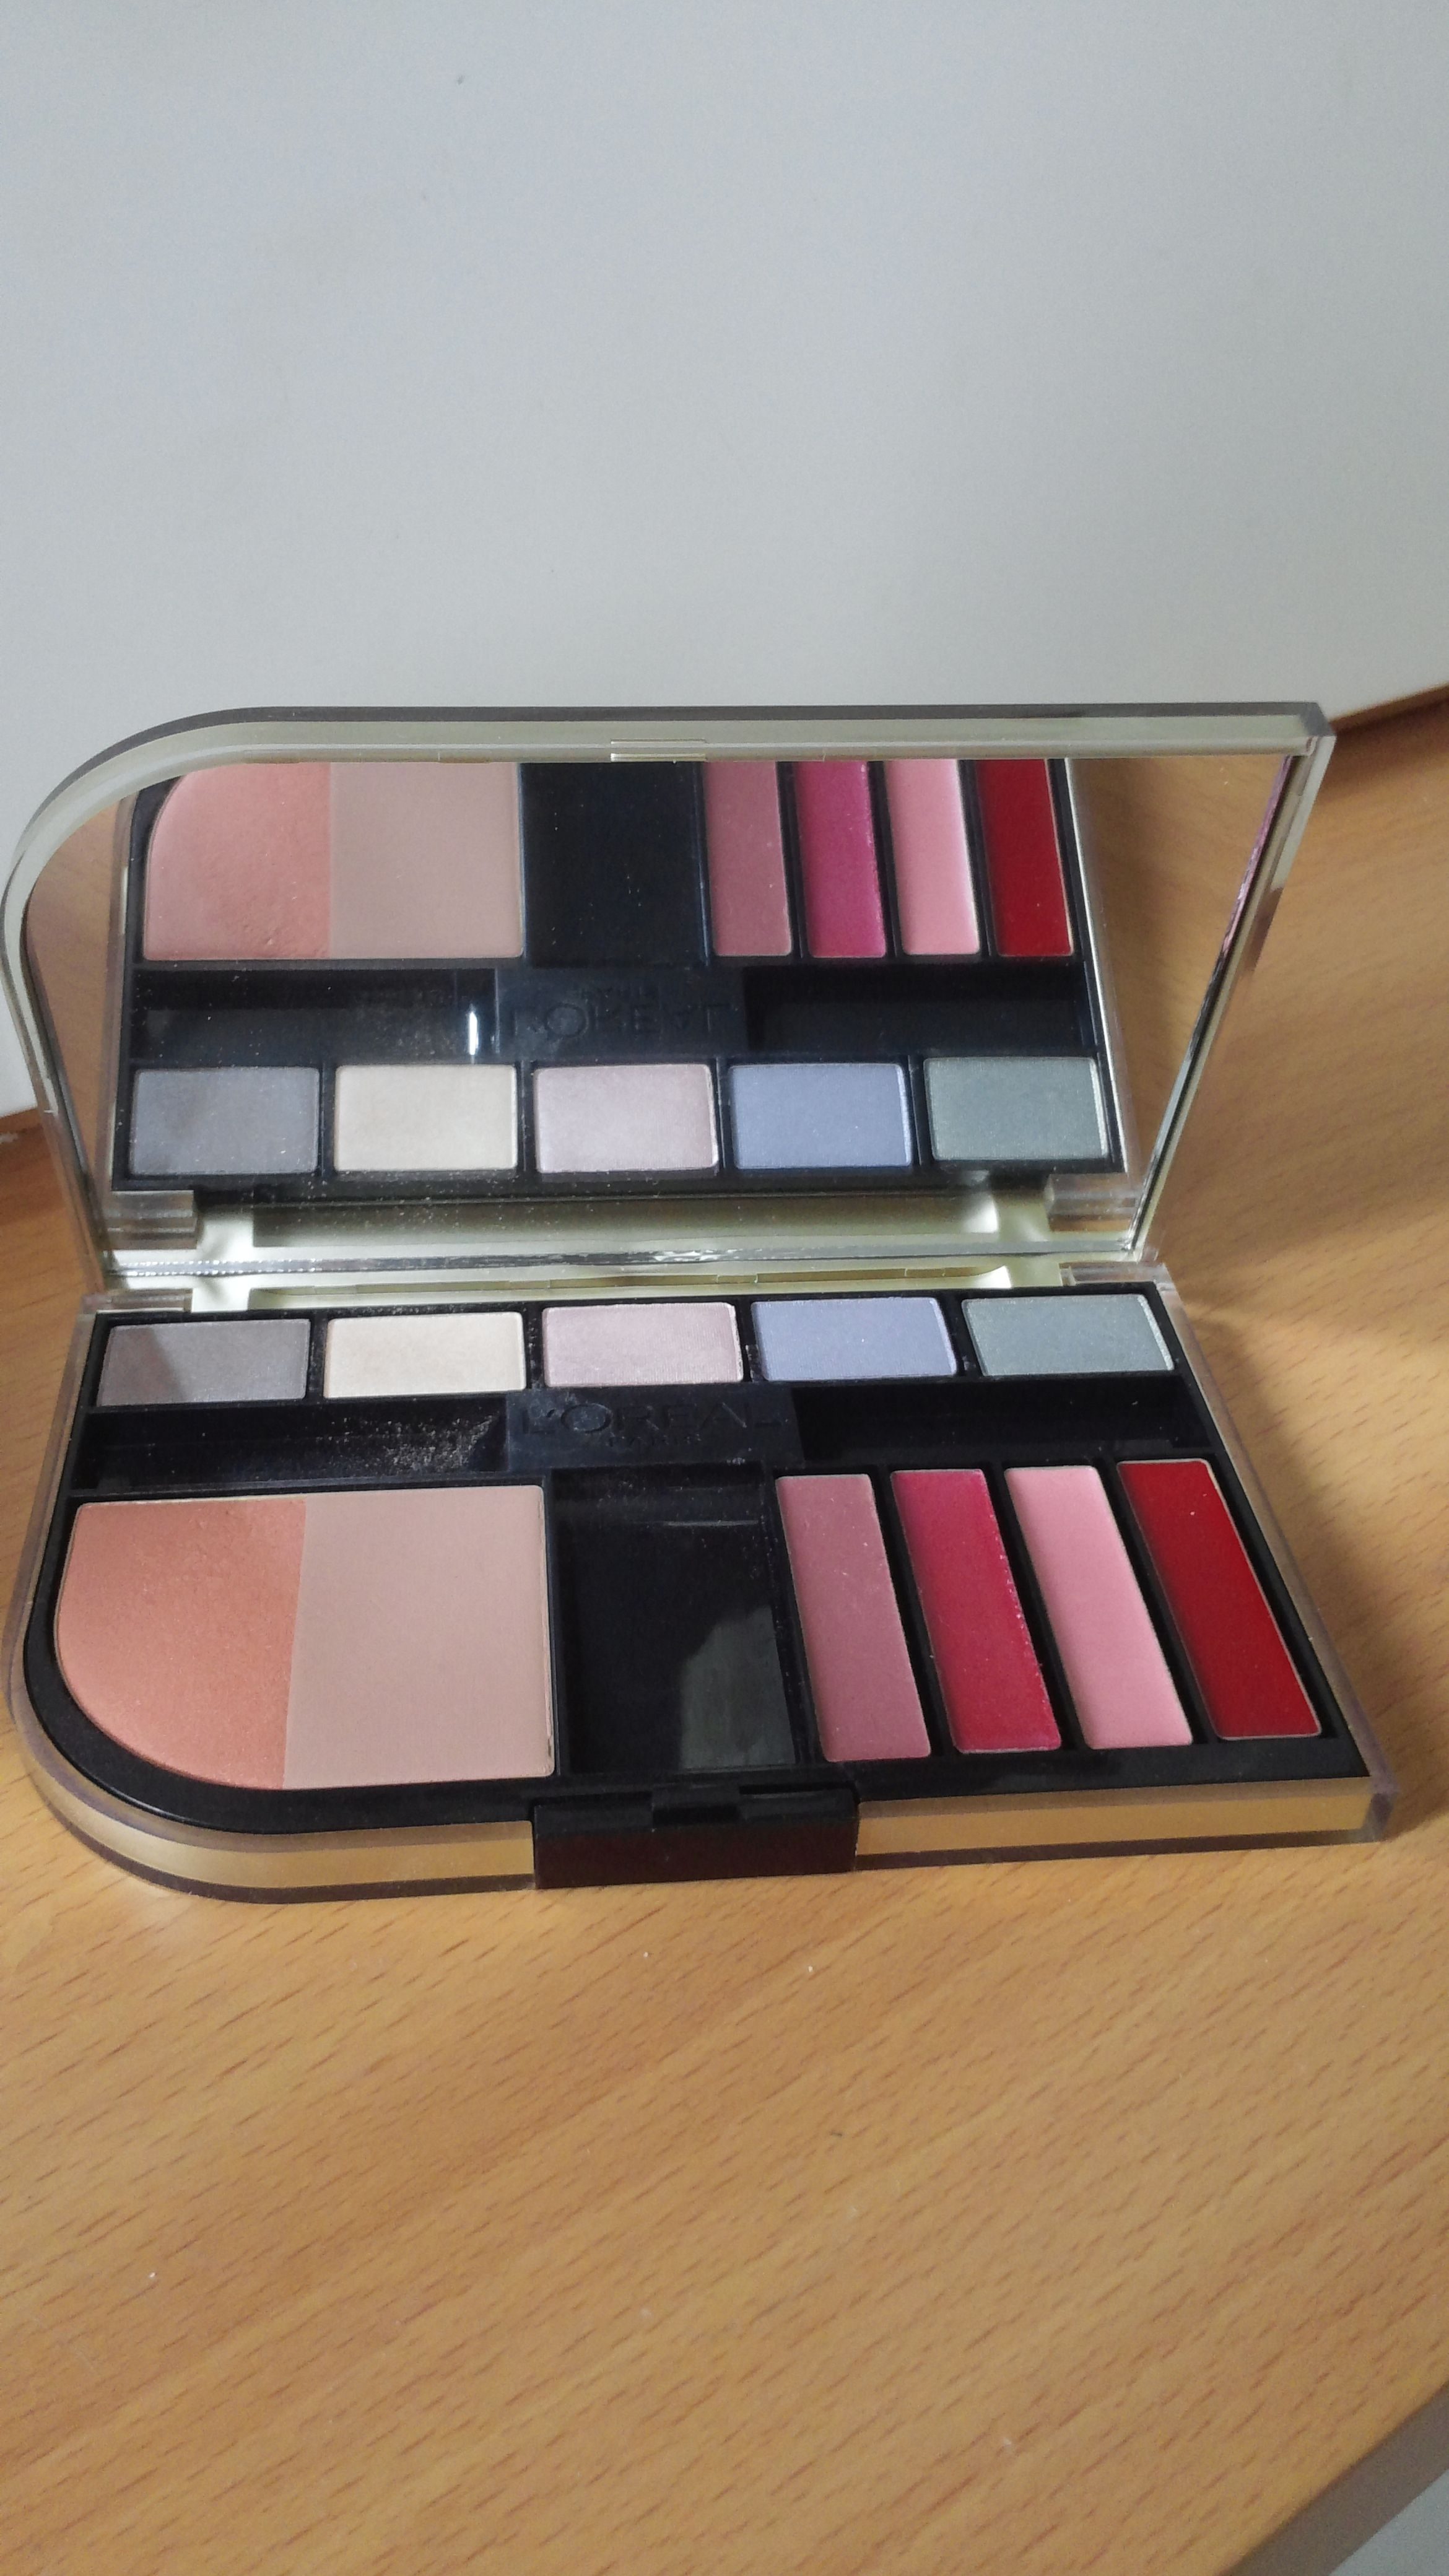 Here's something that L'oreal don't advertise at all! This is their rather elusive Colour Harmony Paris Beauty Look palette comprising lip colours, a taupe powder/contour, a peach/apricot blush and 5 eyeshadows. Just the thing for small evening clutches.